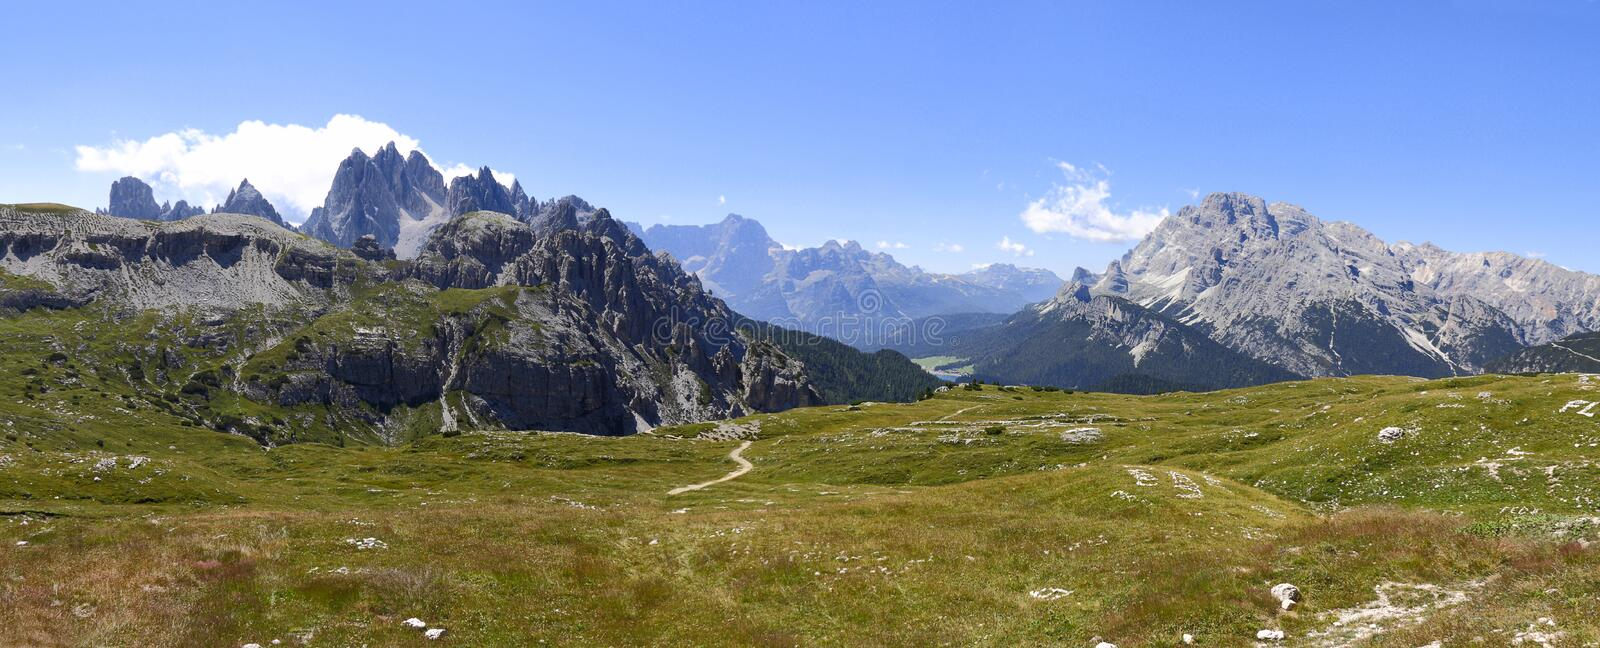 Wonderful view of the Dolomites - Trentino Alto Adige on the Nat. Ional Park Sexten Dolomites Italy royalty free stock image